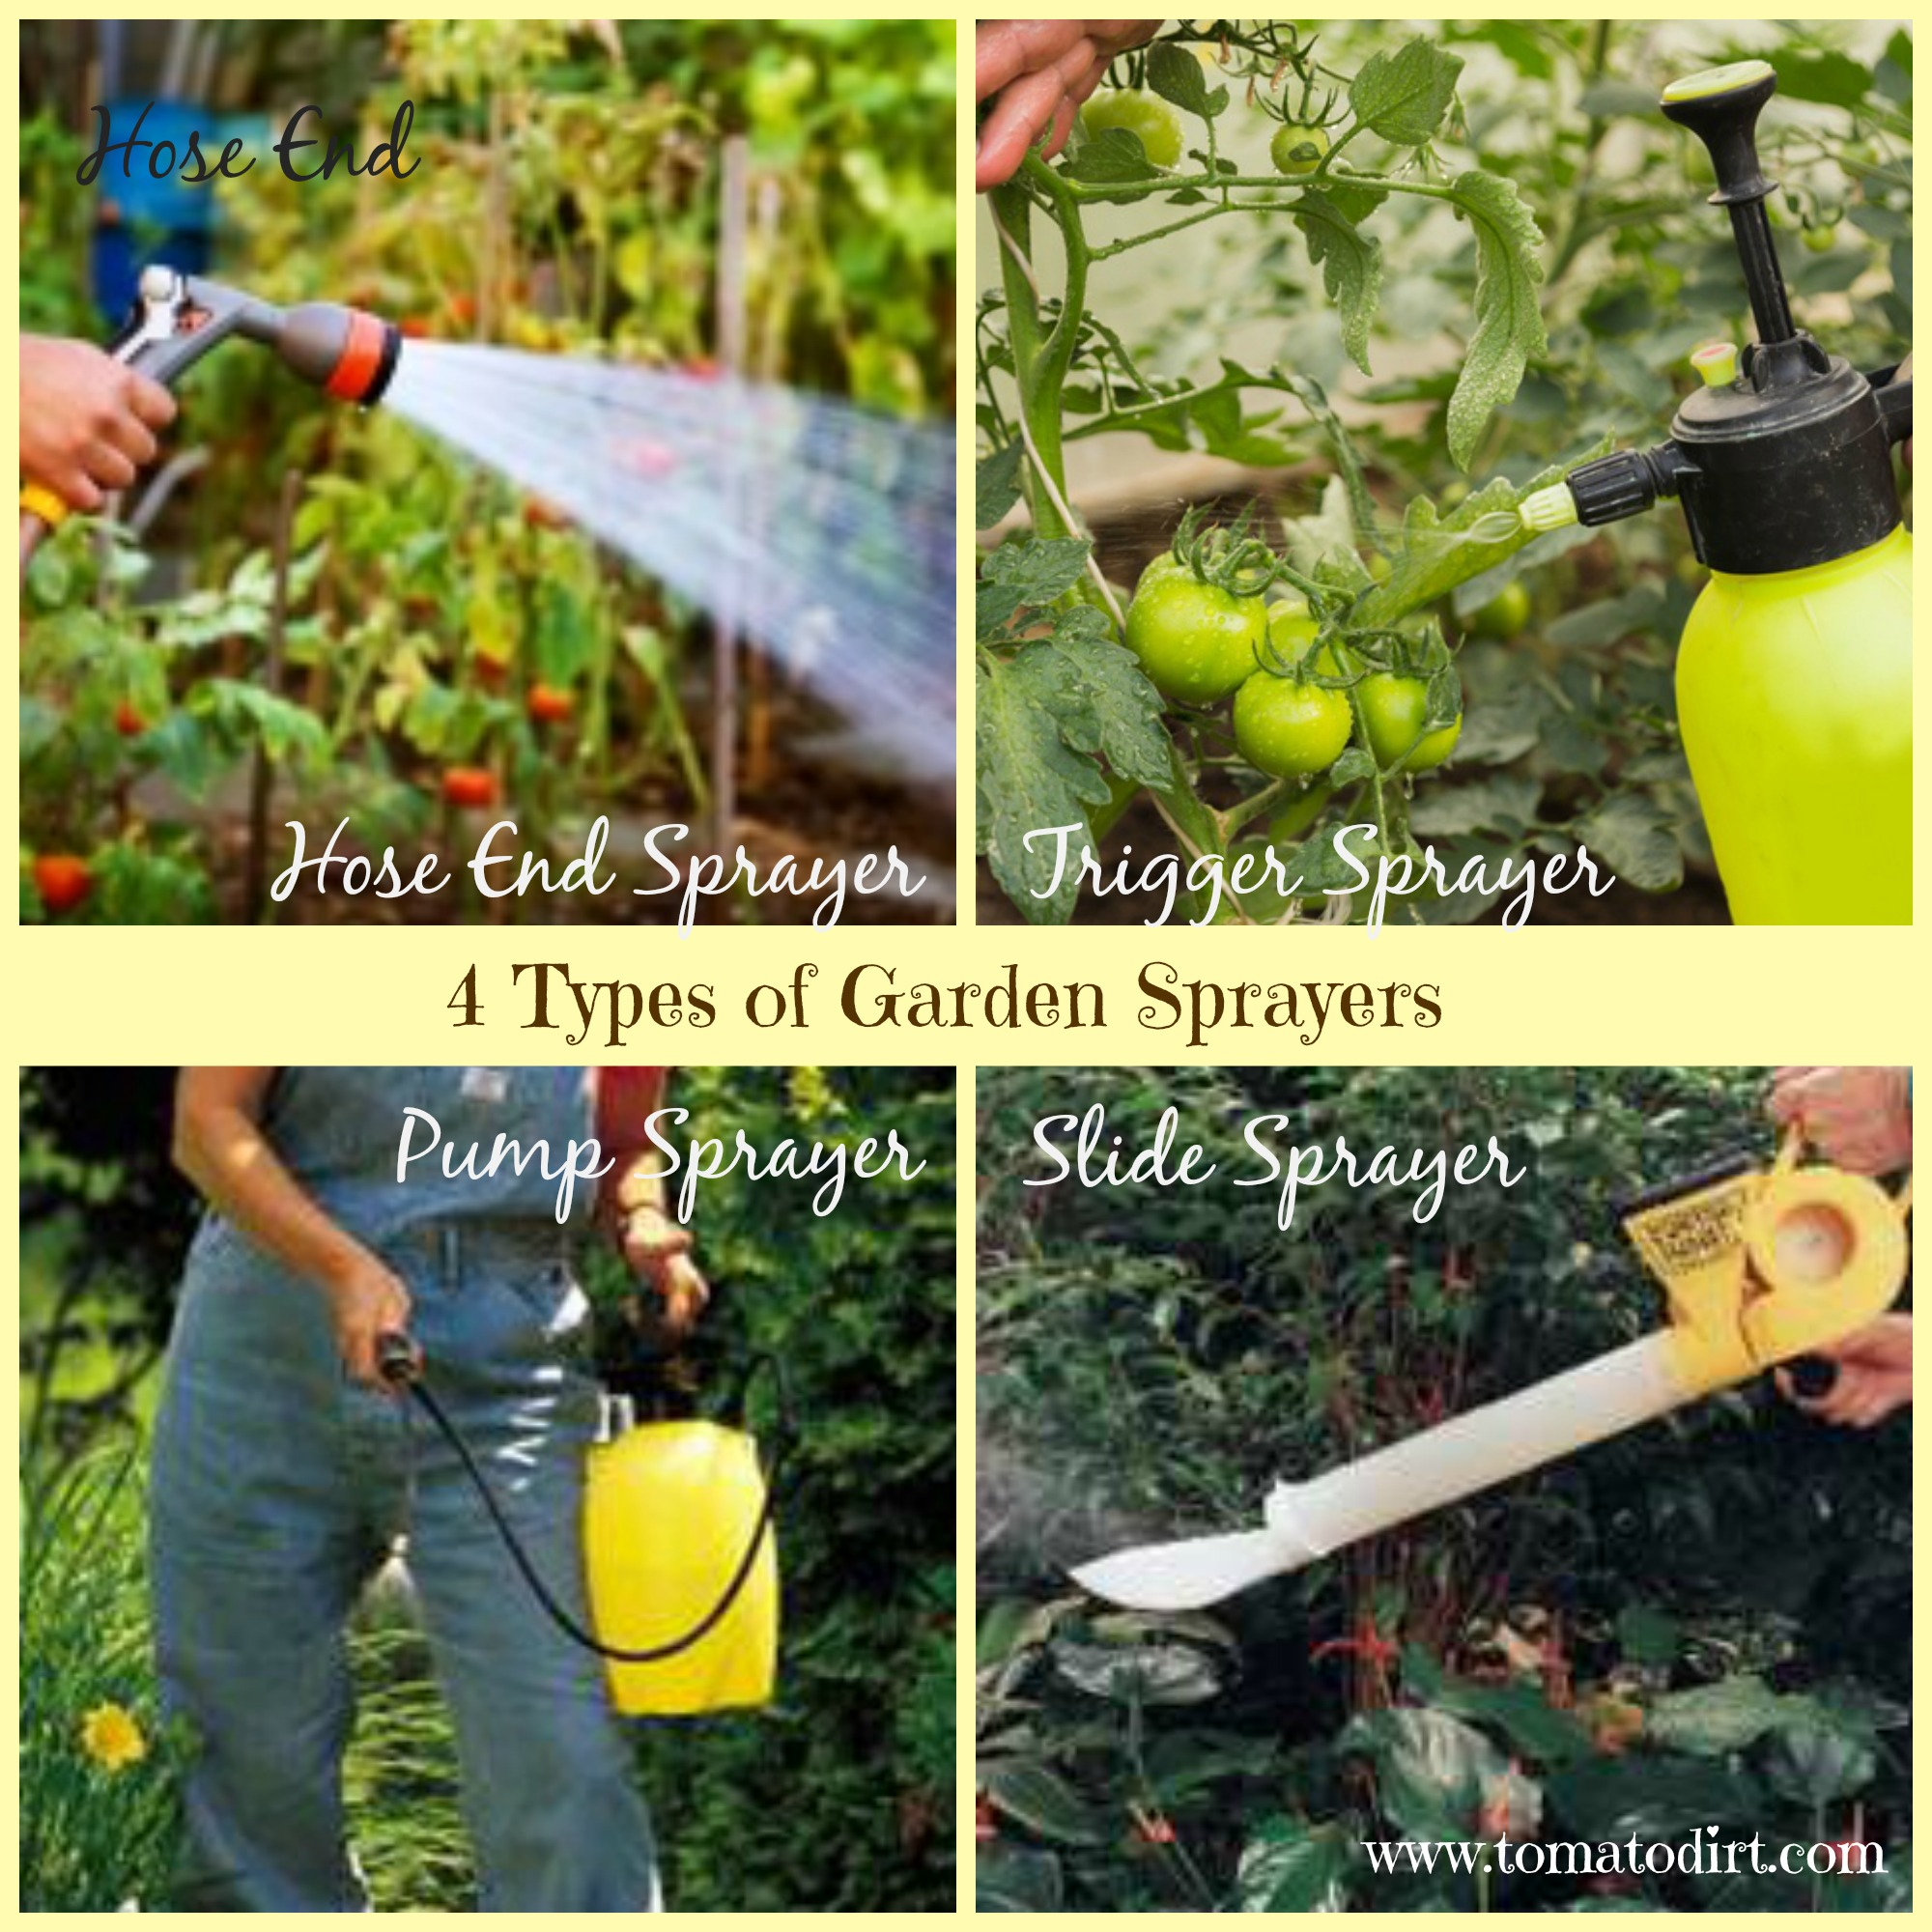 4 types of garden sprayers with Tomato Dirt